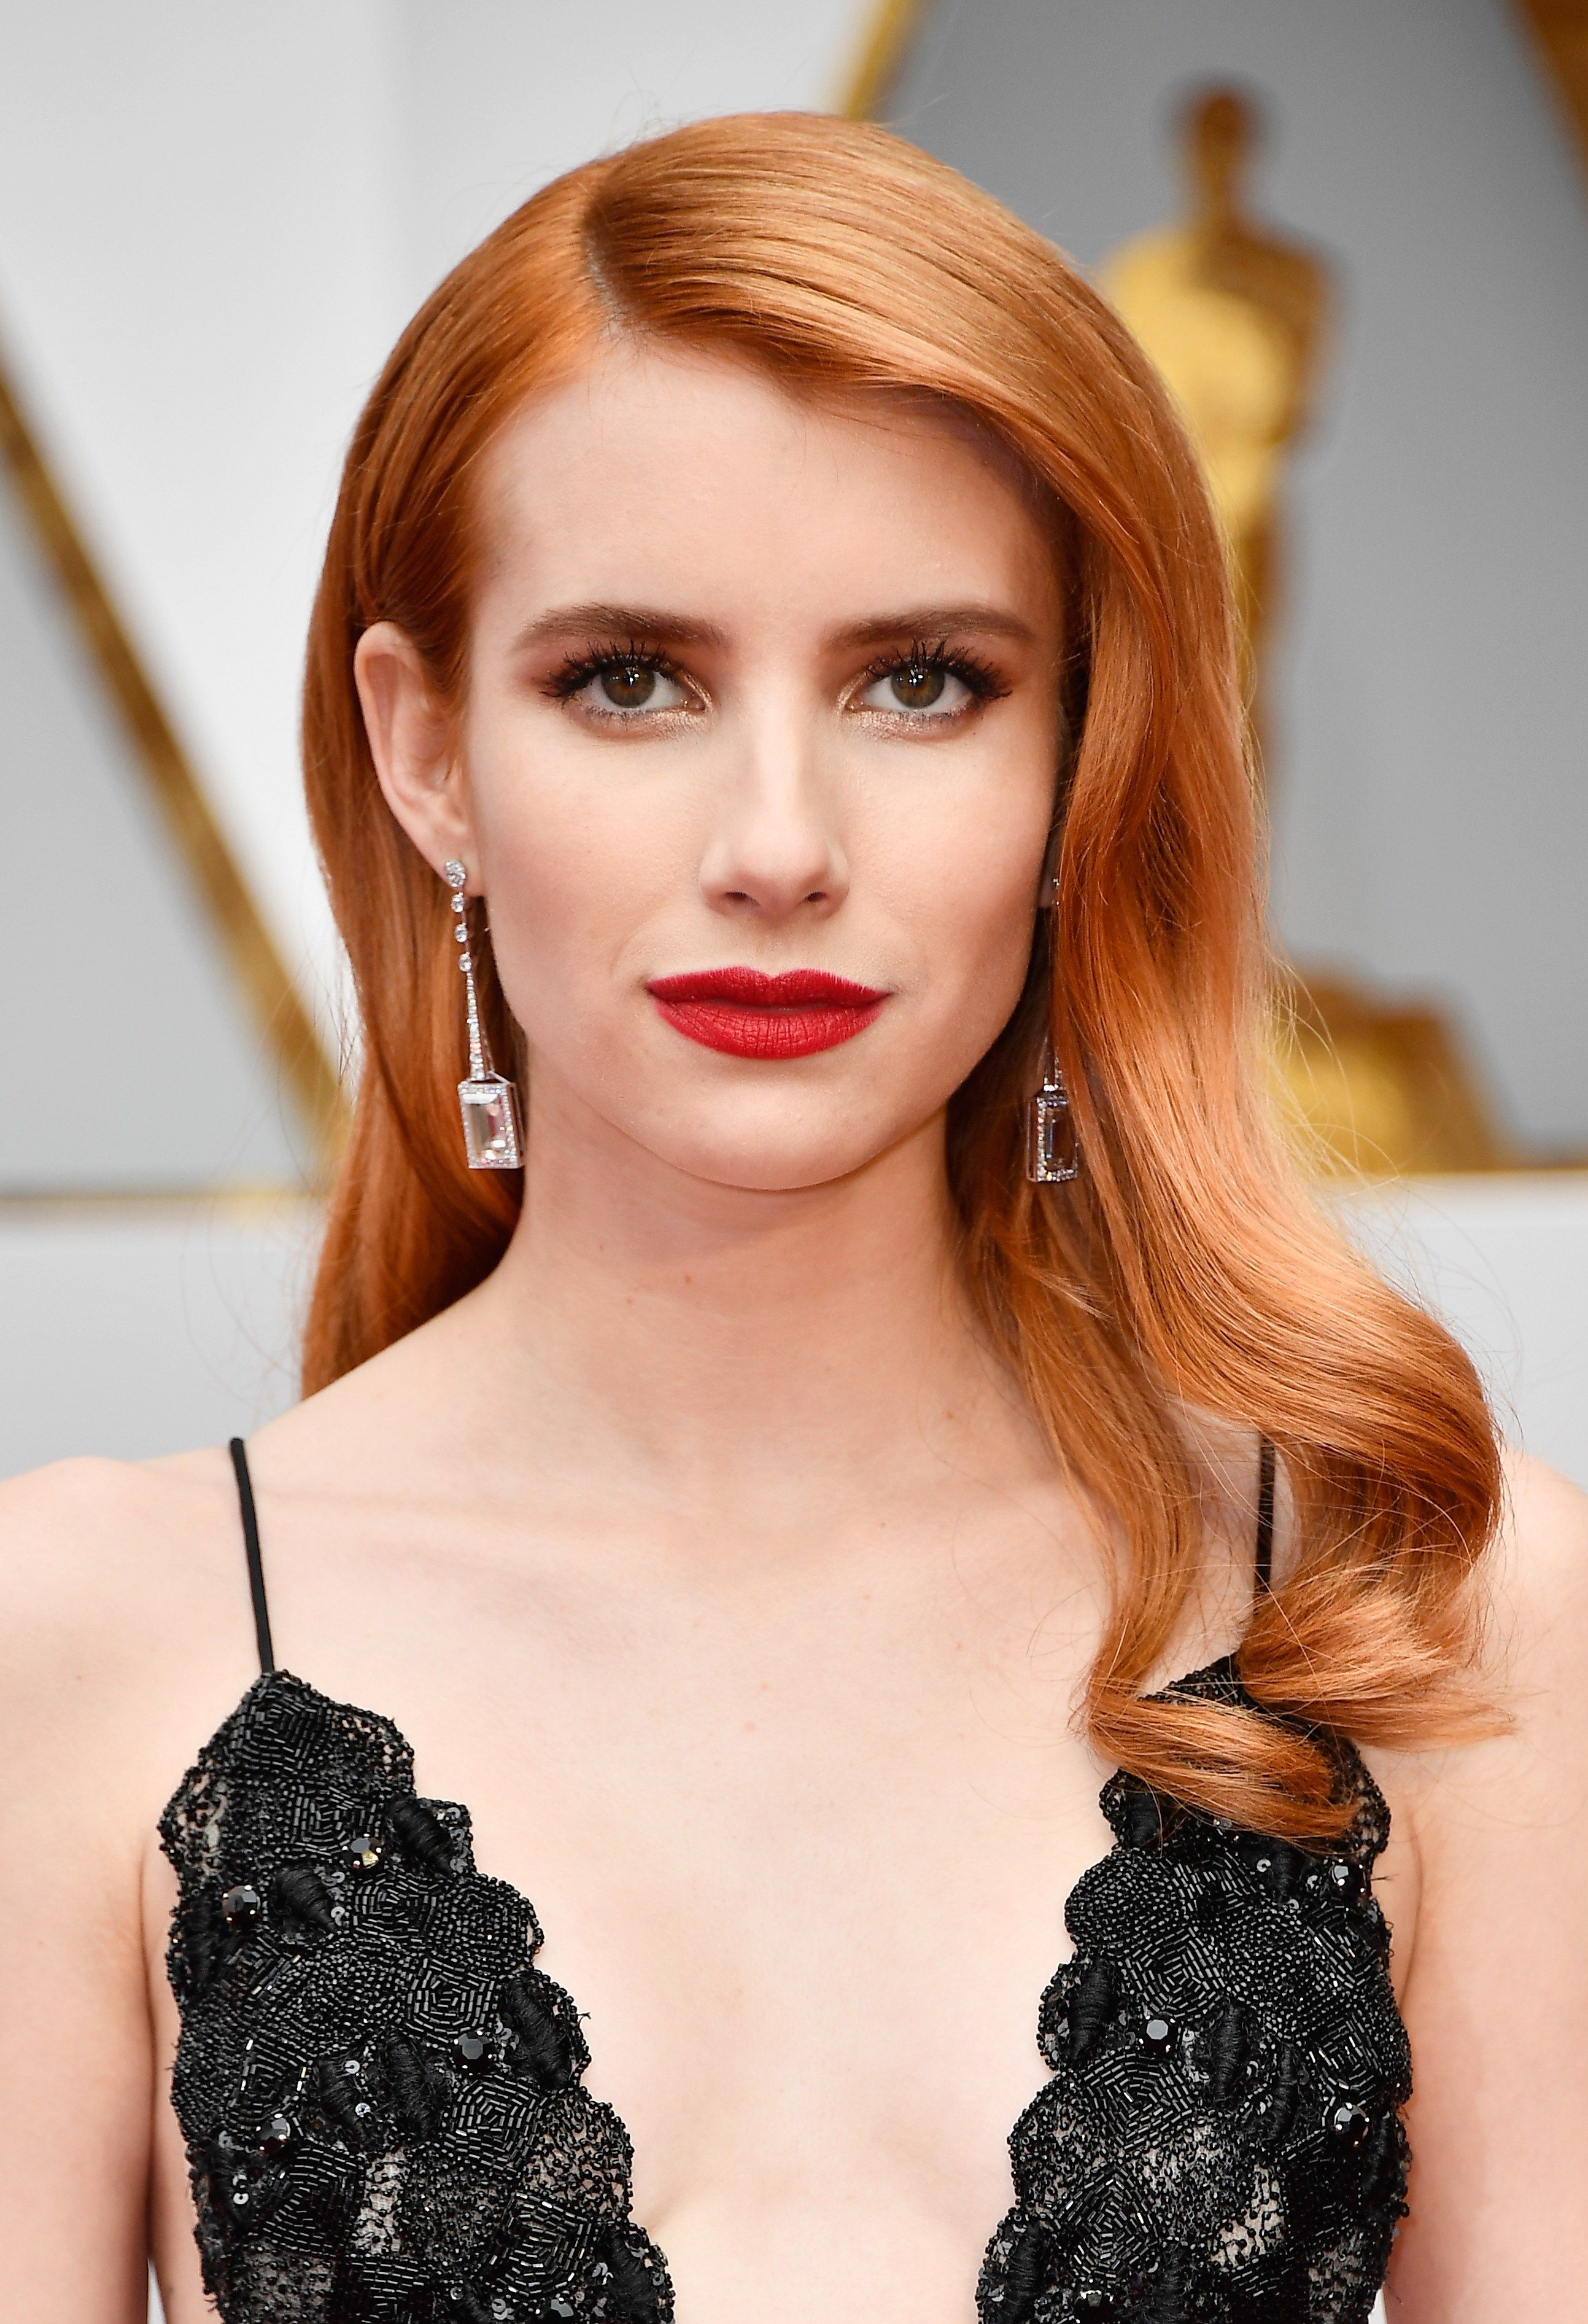 Every Lipstick Worn at the Oscars 2017